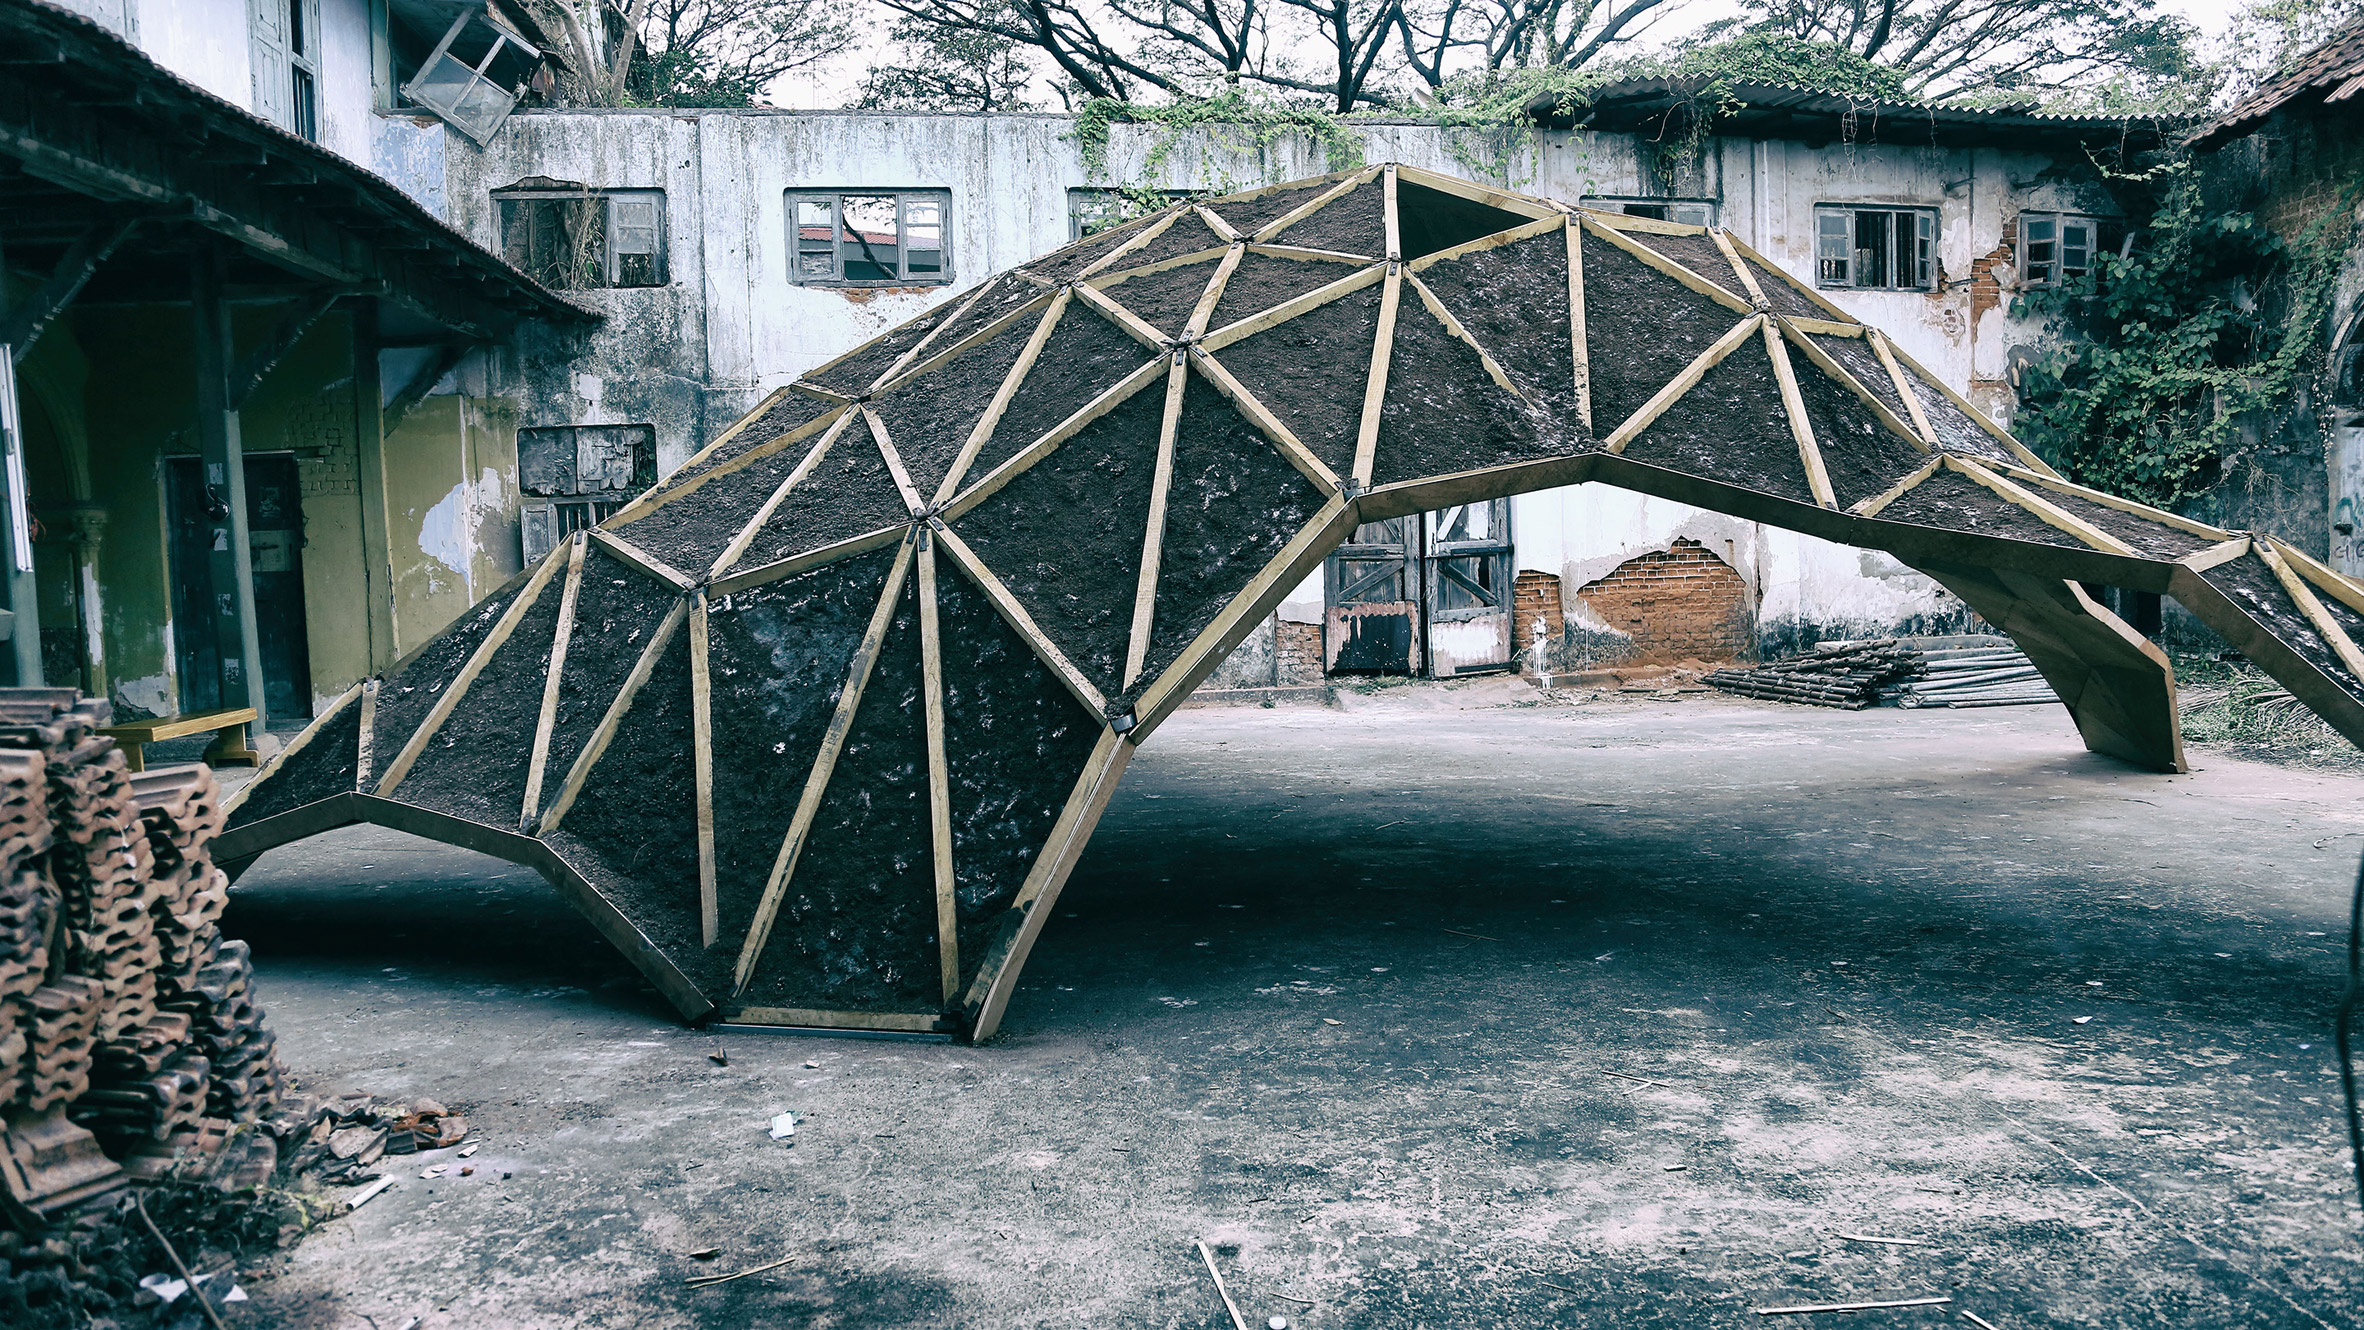 Fungus used to build arching pavilion in Kerala